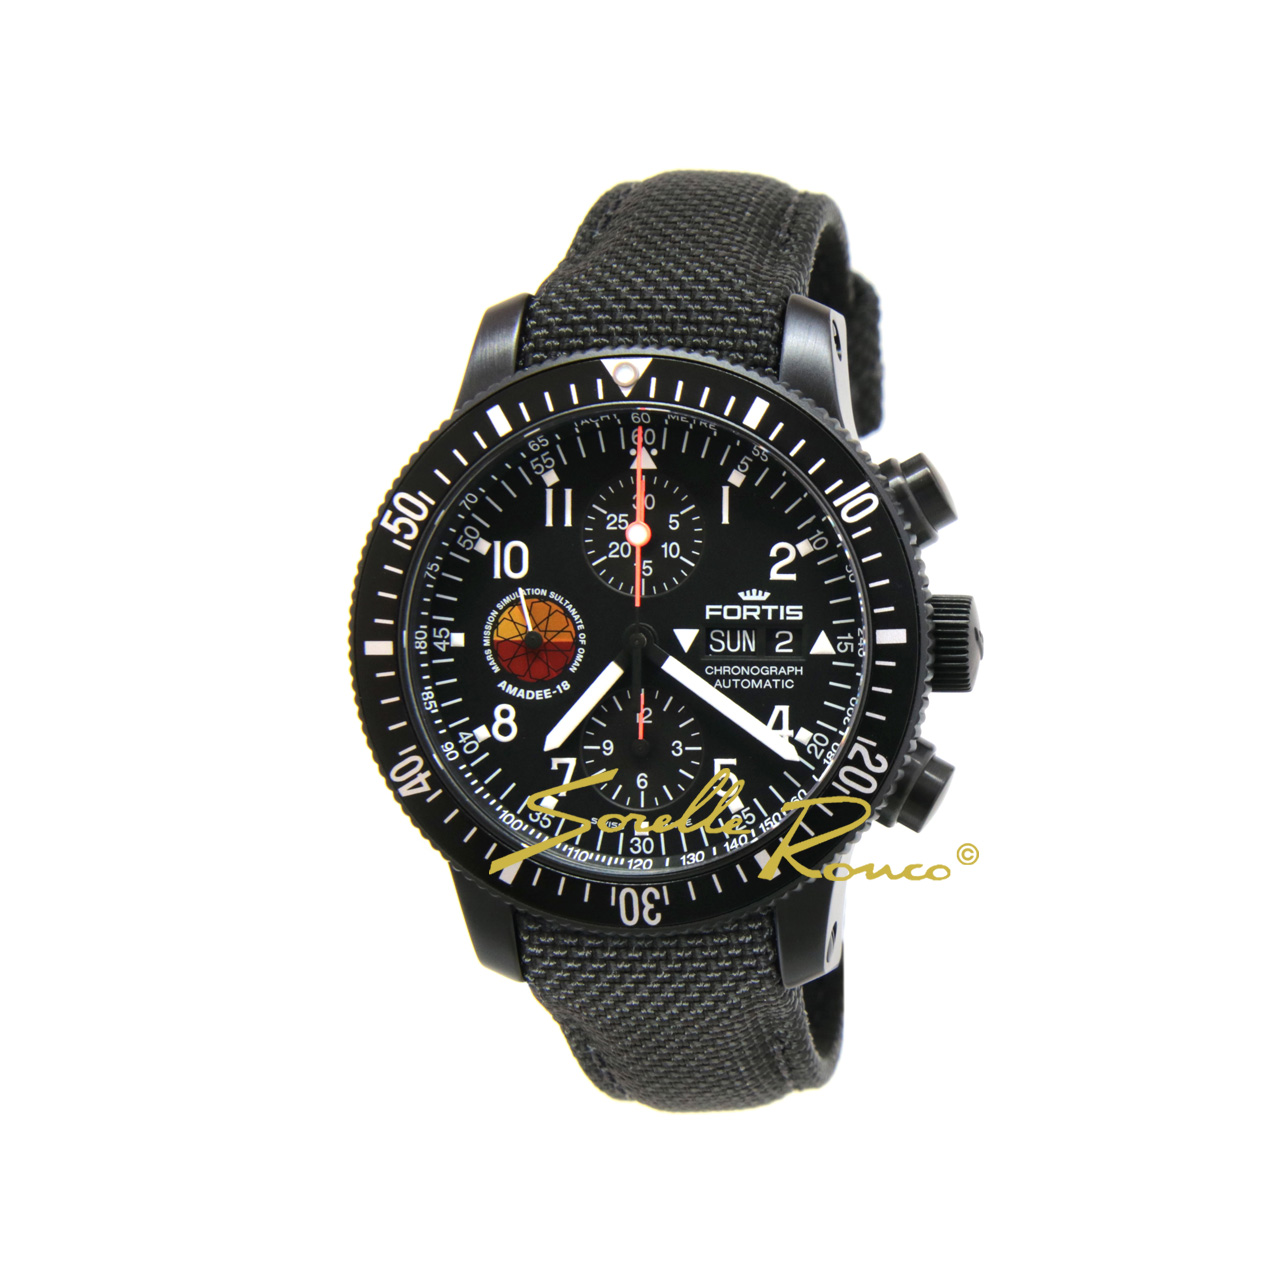 Official Cosmonauts Amadee-18 42mm